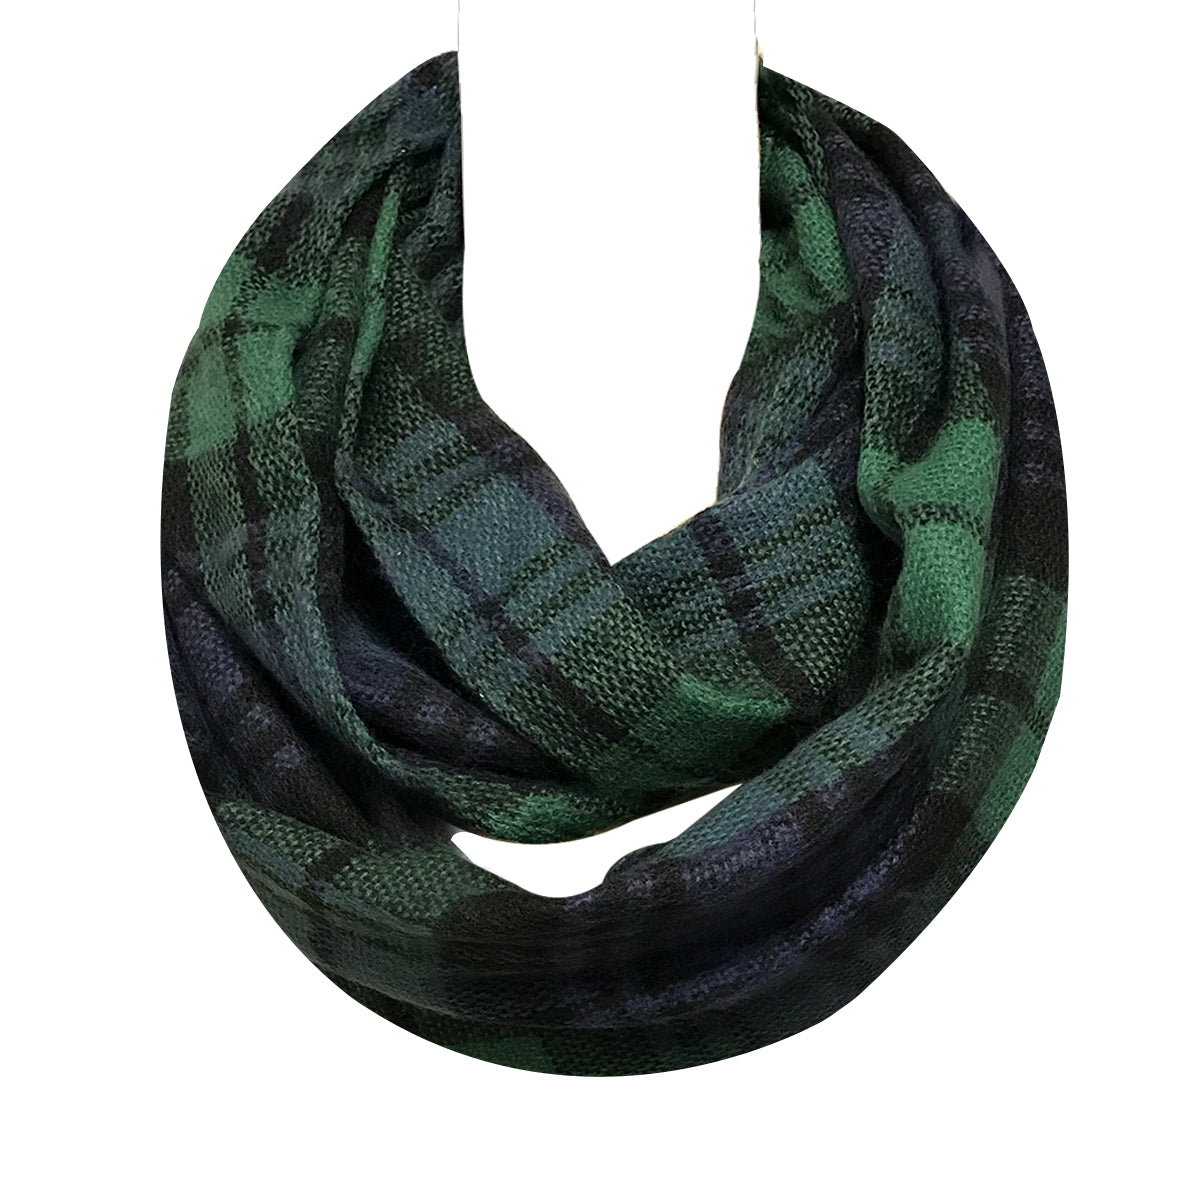 Wrapables Plaid Print Infinity Scarf and Beanie Hat Set